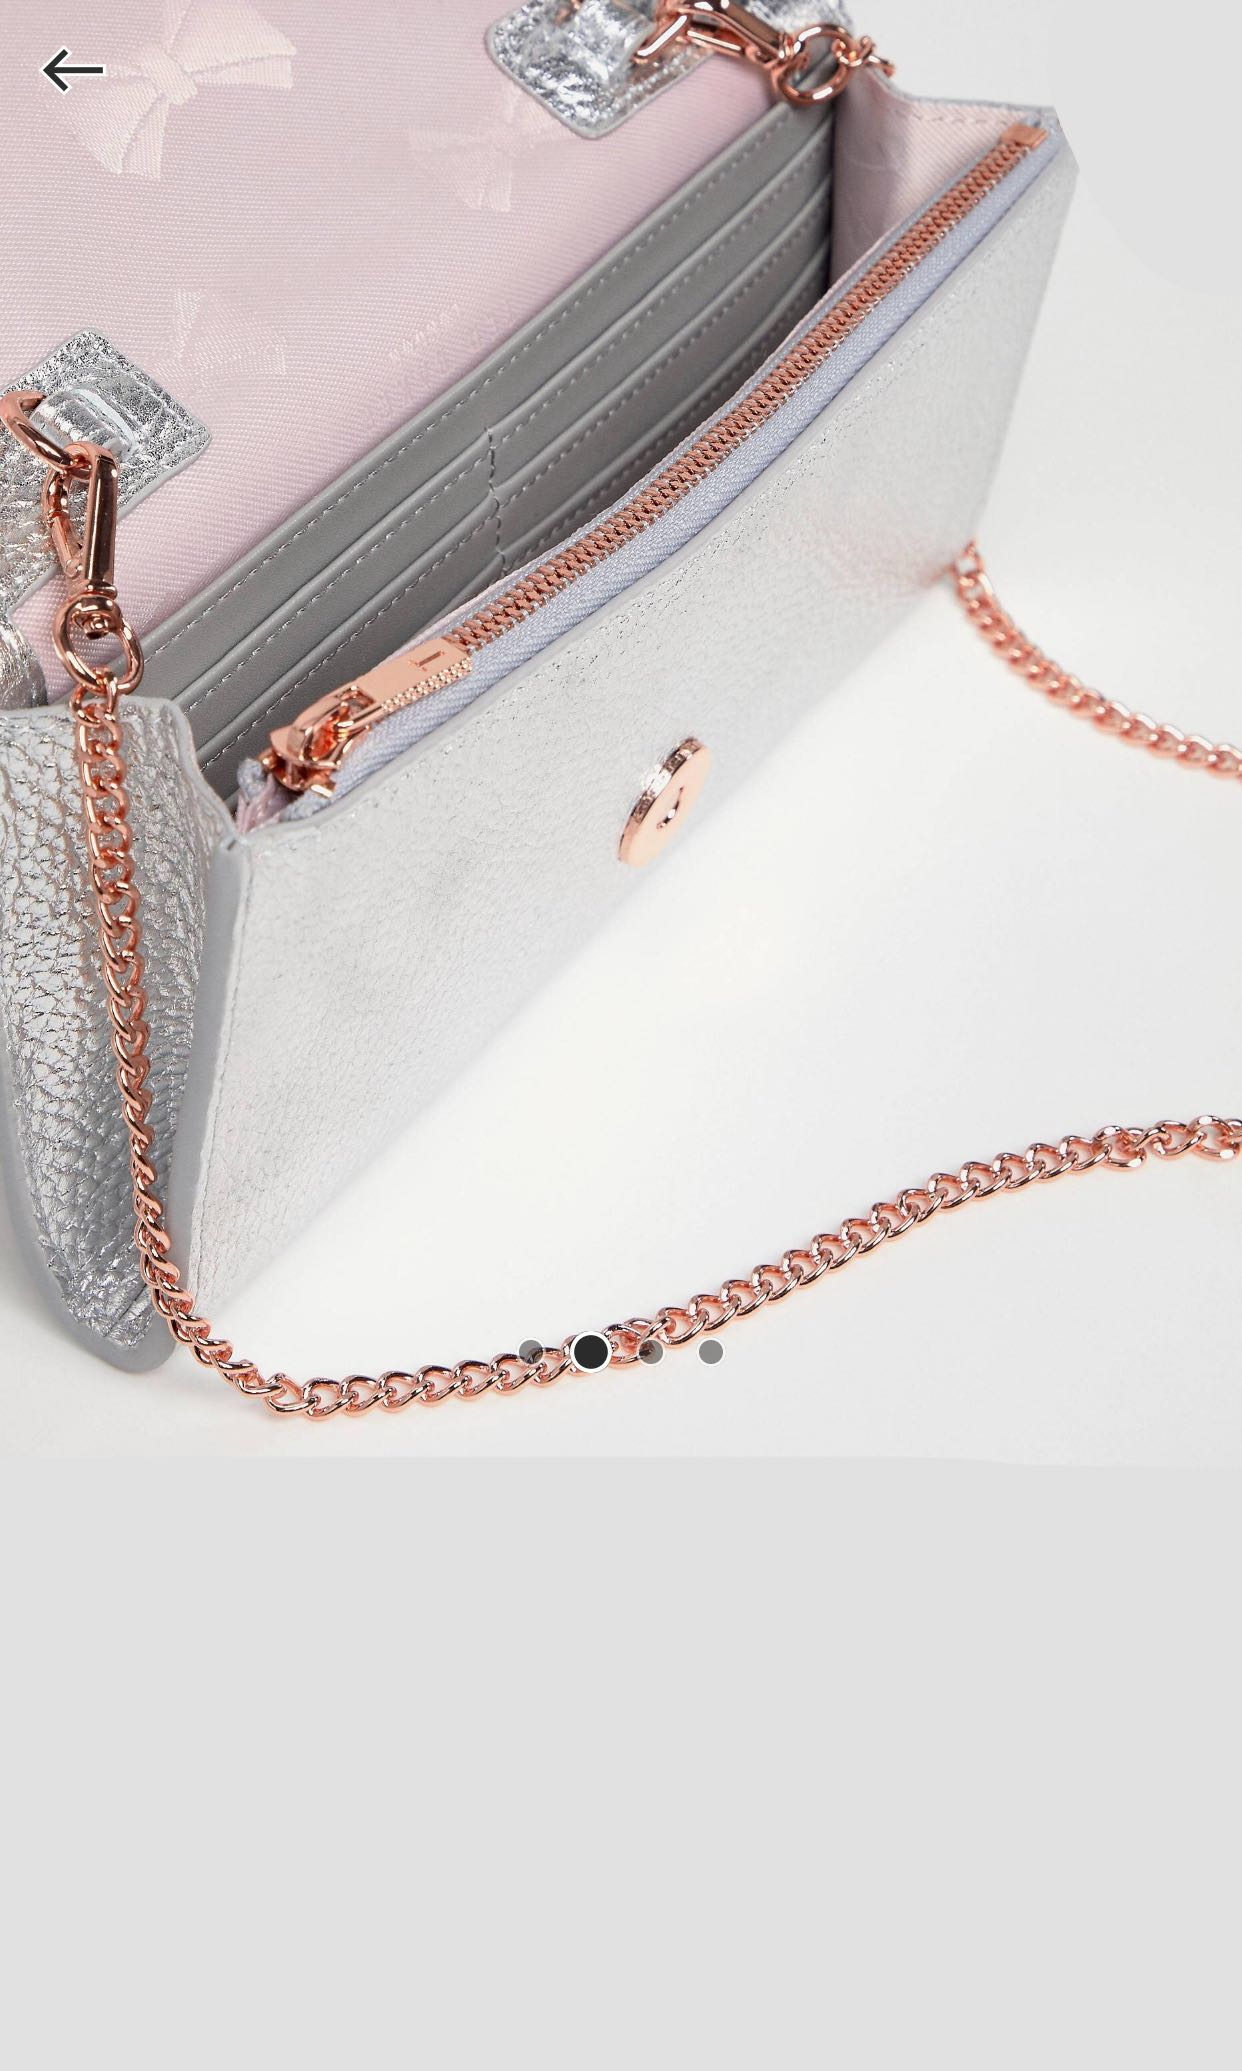 a5d384a02 Clearance ted baker bag with gold chain sling